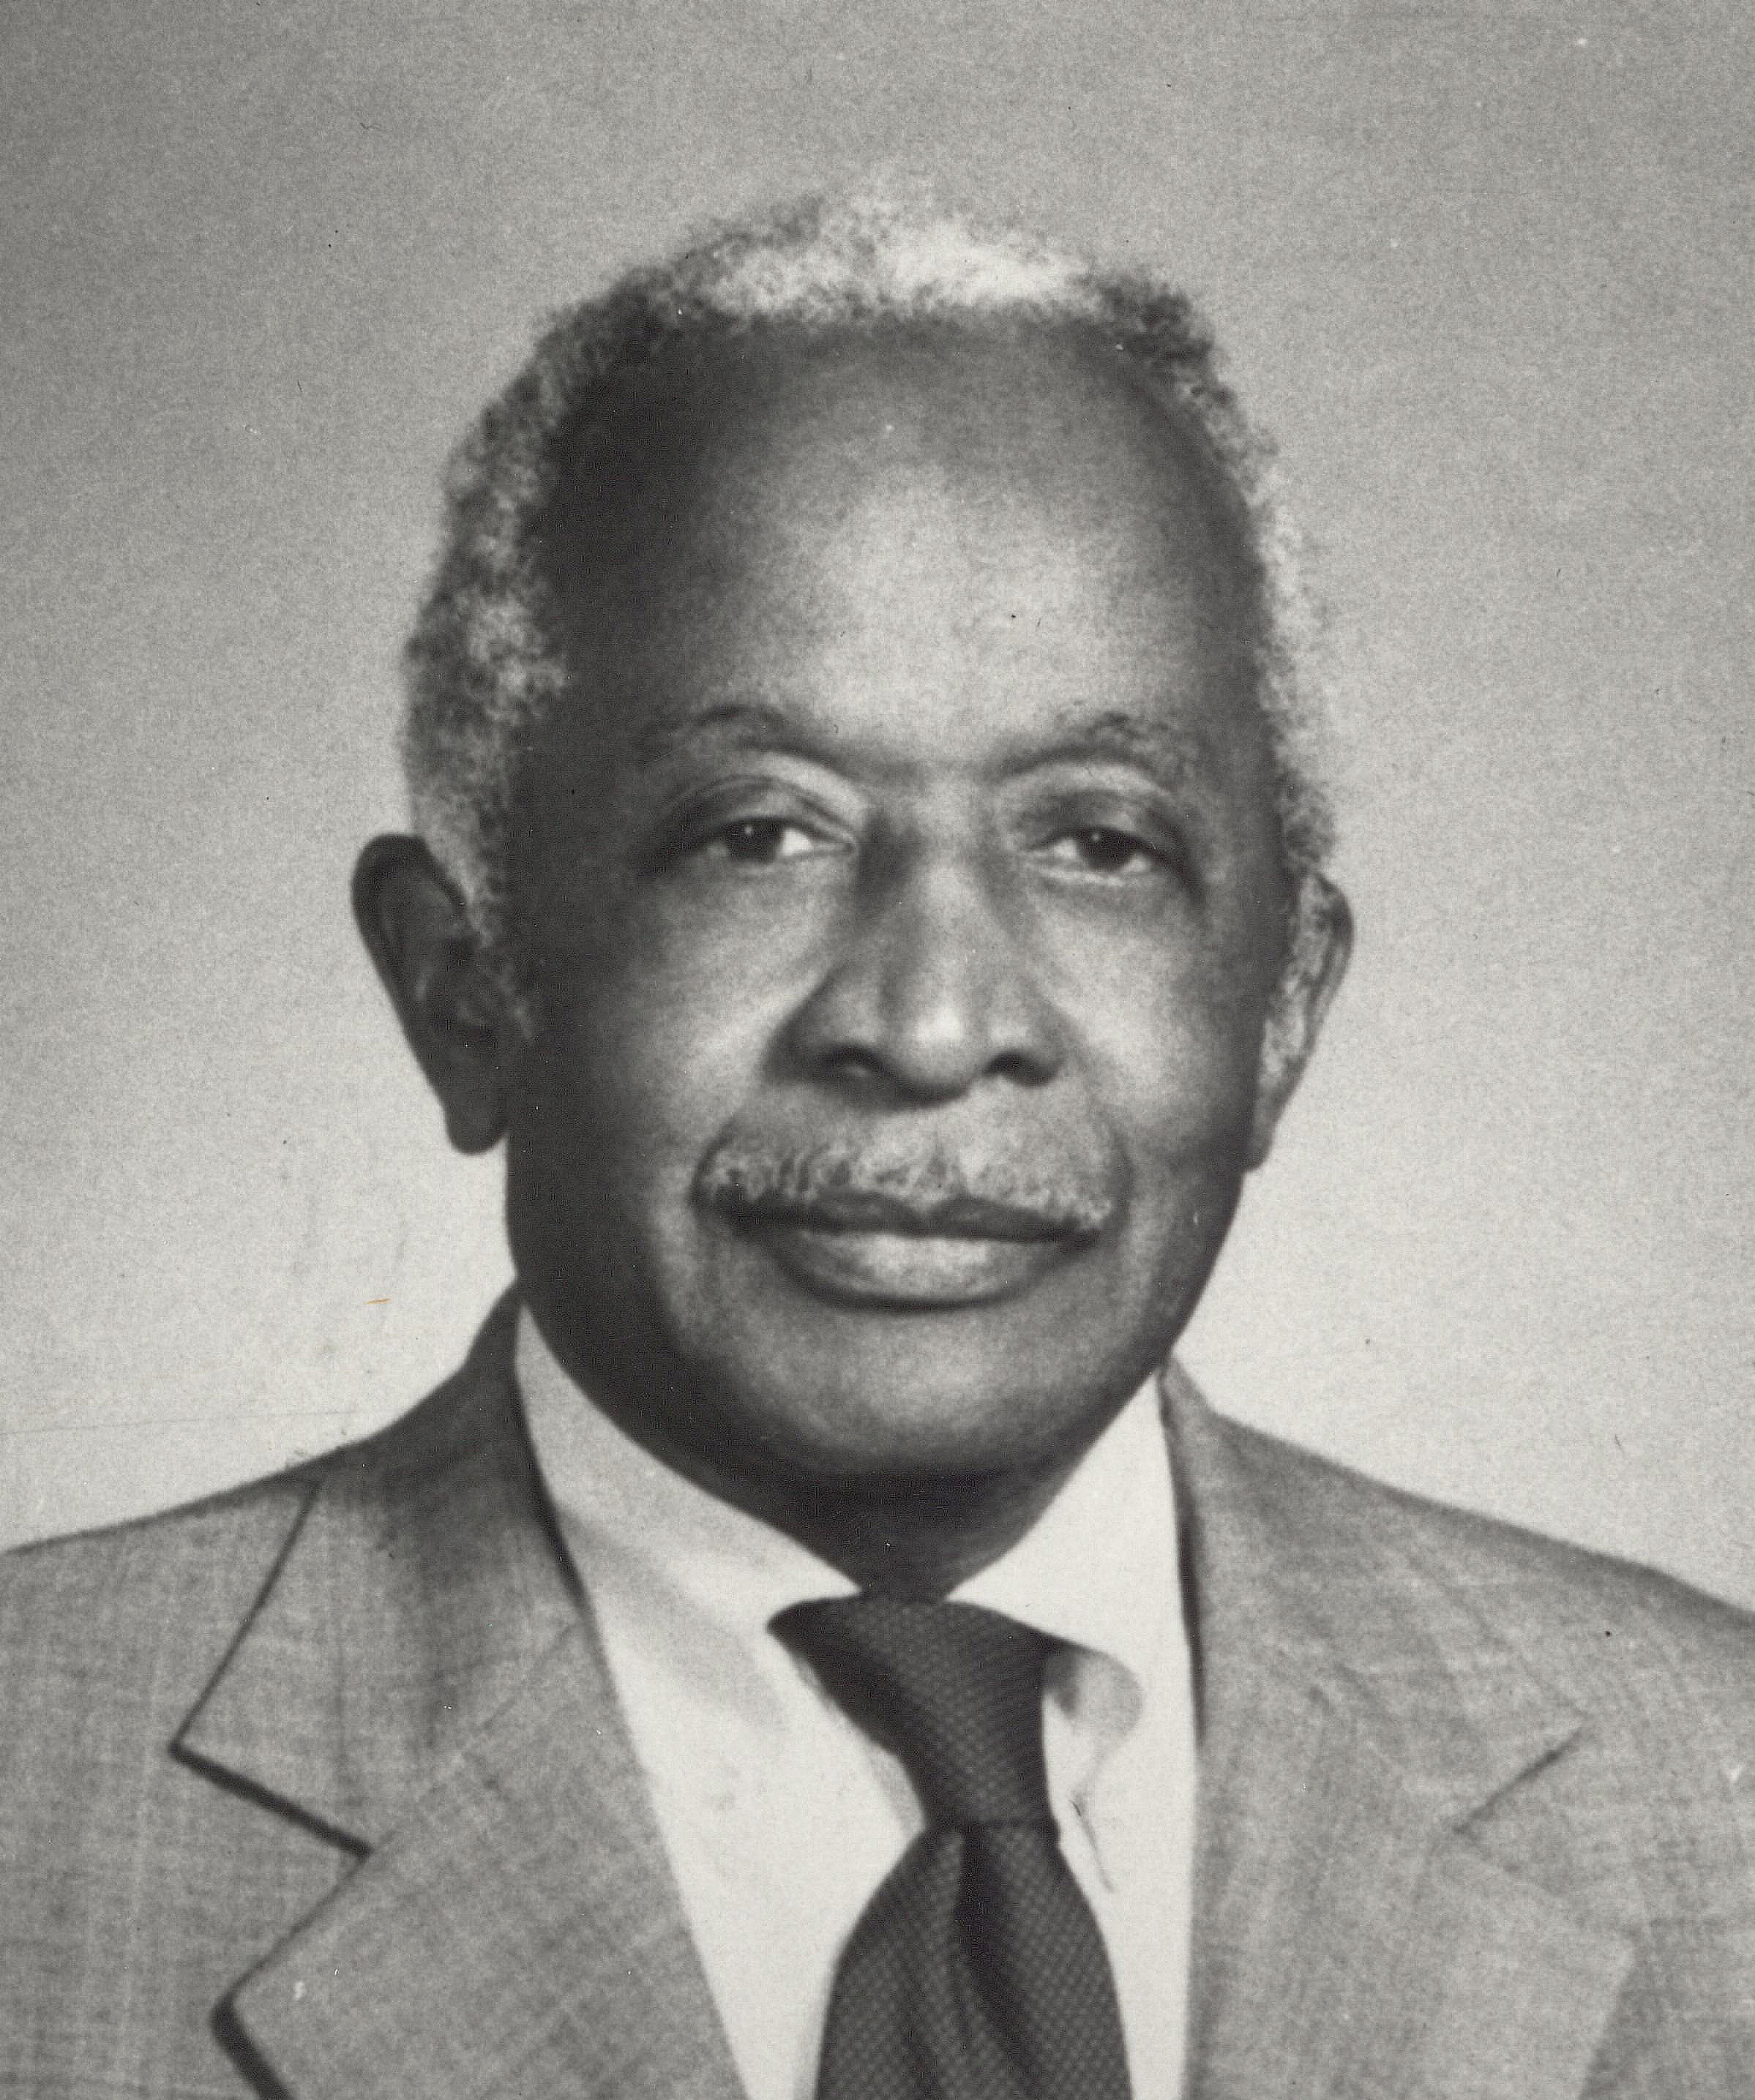 In addition to the 1962 case, Louis Redding represented DSC students in the 1950 Parker vs. the University of Delaware case.